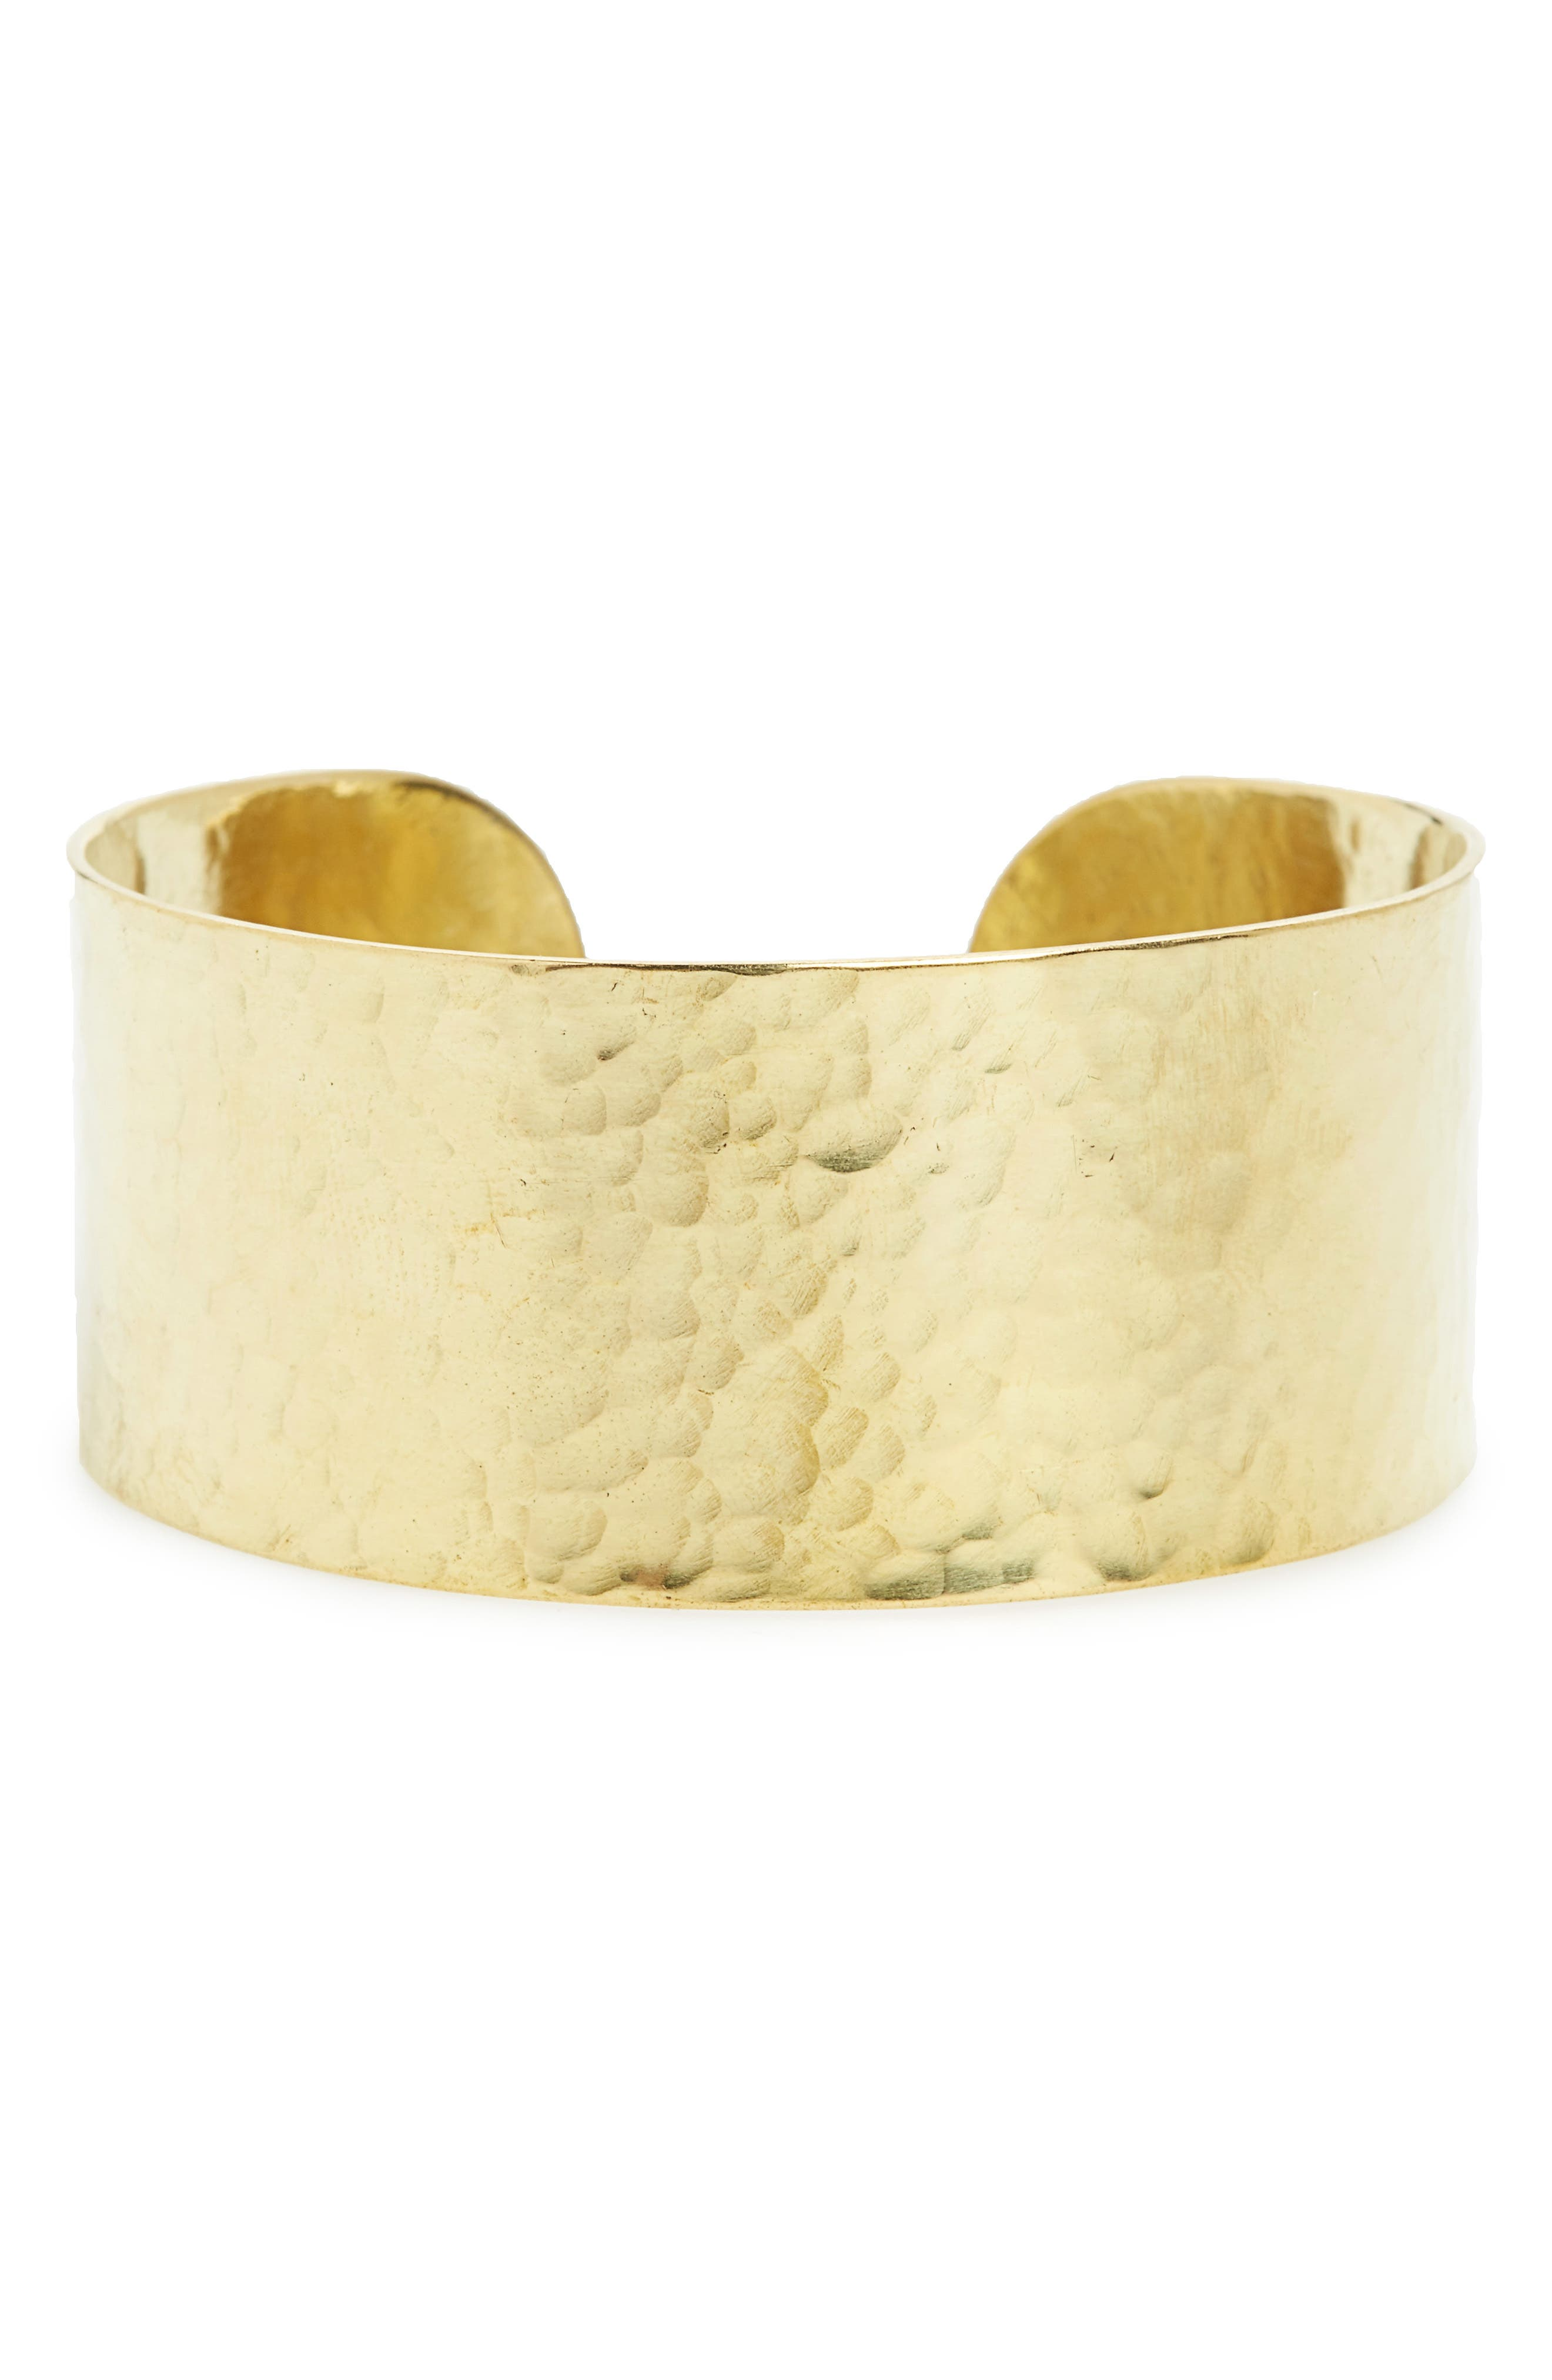 Hammered Brass Cuff,                         Main,                         color, 200